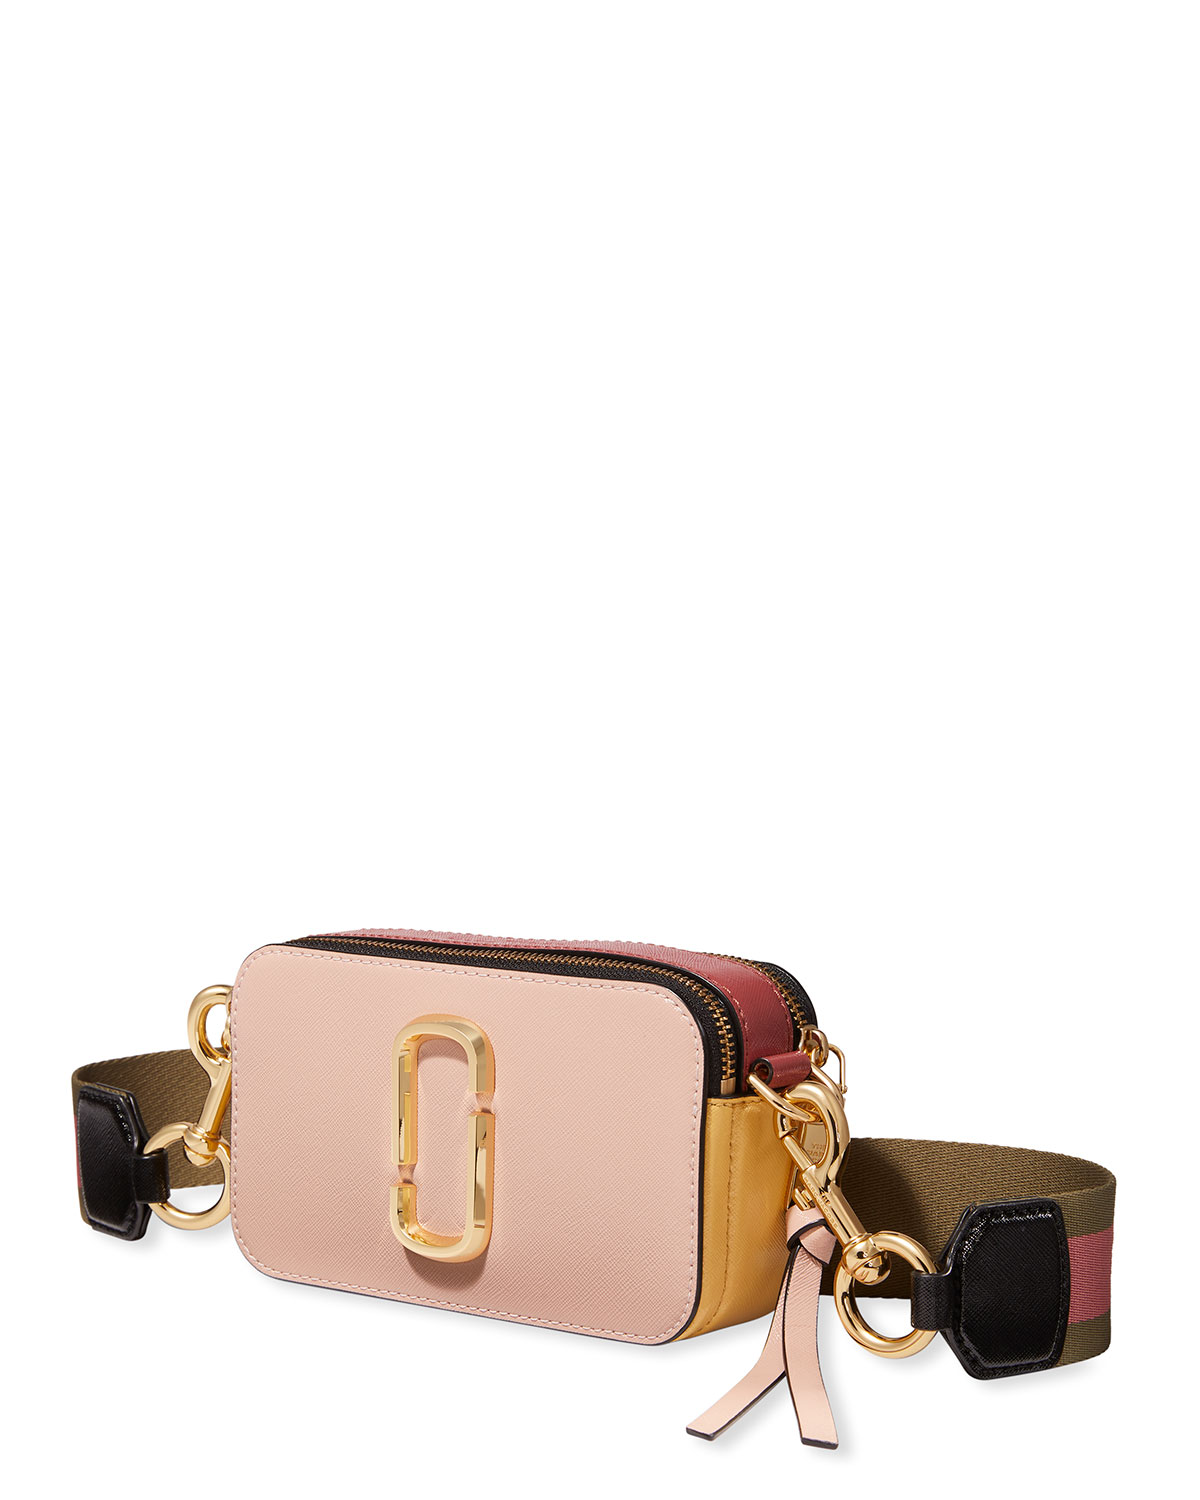 6b3e87854 Marc Jacobs Snapshot Colorblock Camera Bag | Neiman Marcus